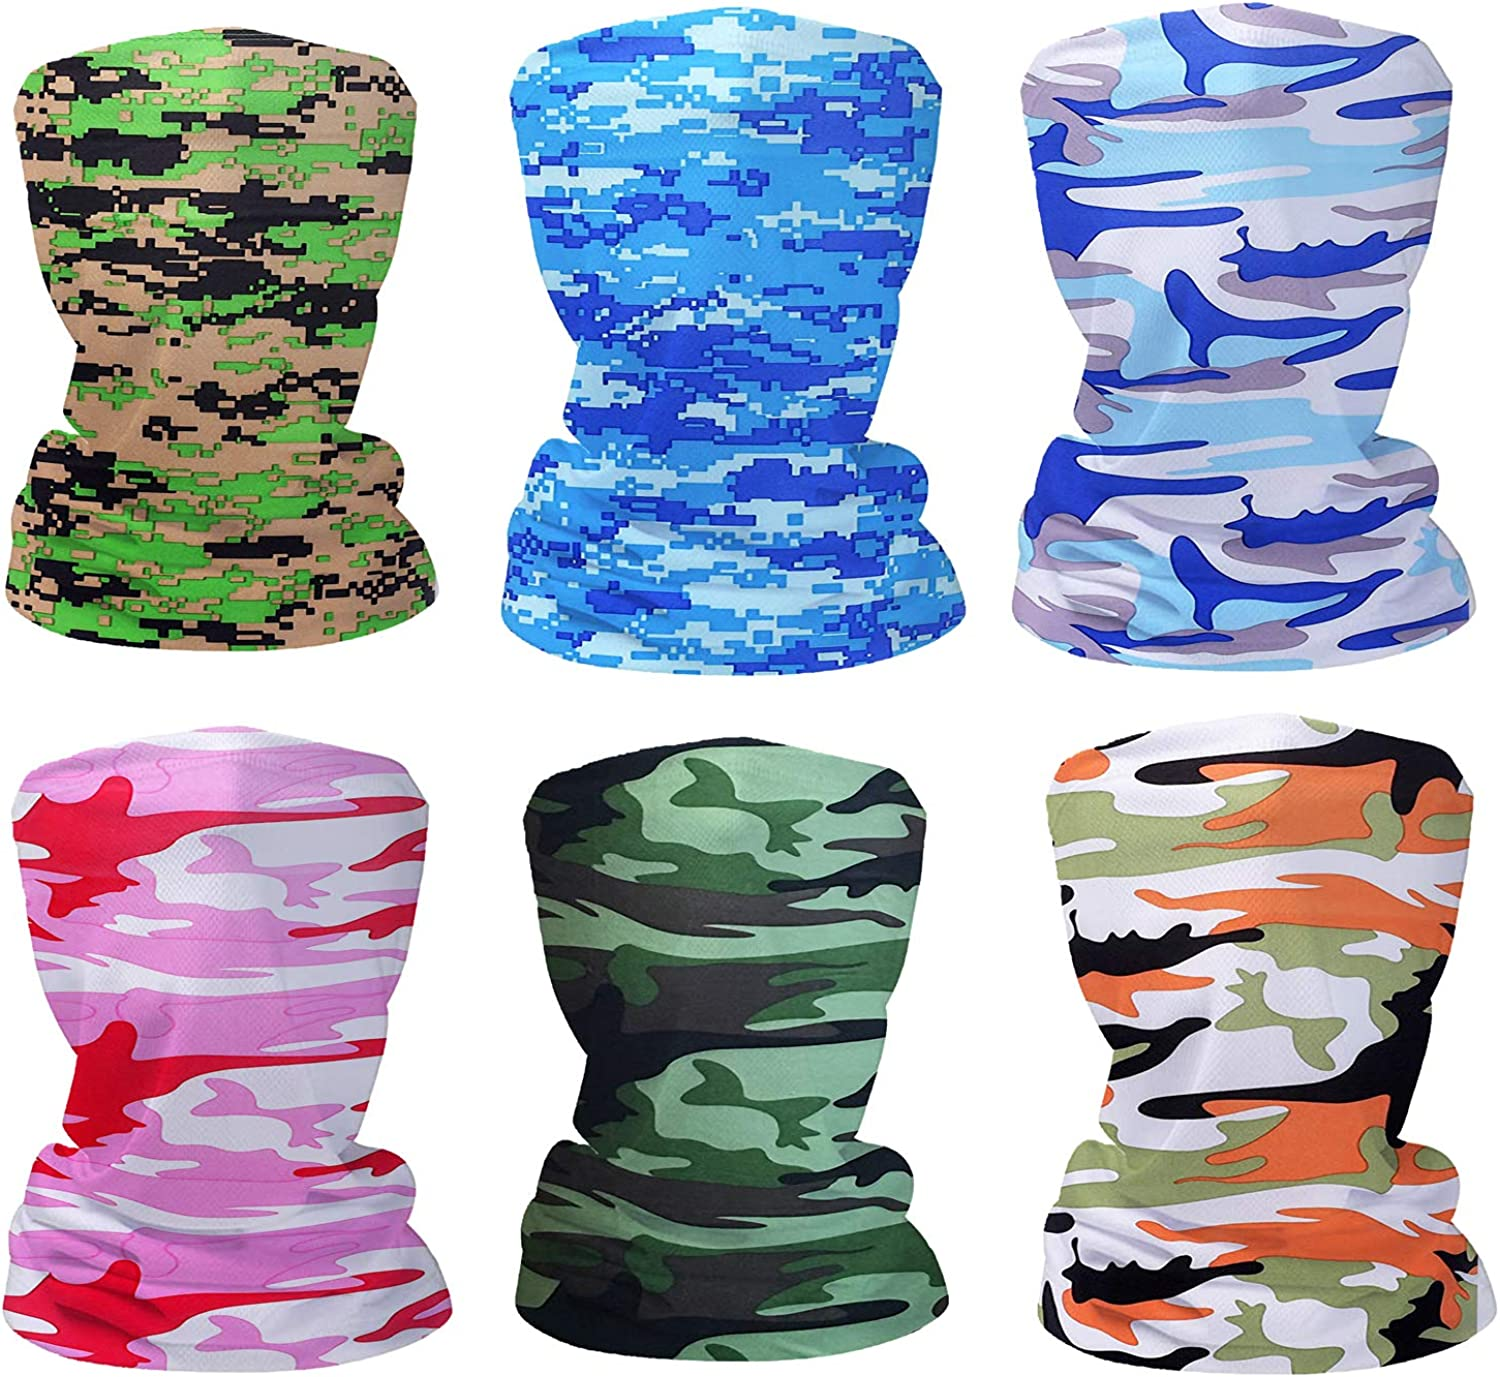 Fashion Face Dust Mask (6 PCS) Bandanas Sports & Casual Headwear Seamless Neck Gaiter, Headwrap, Balaclava, Helmet Liner